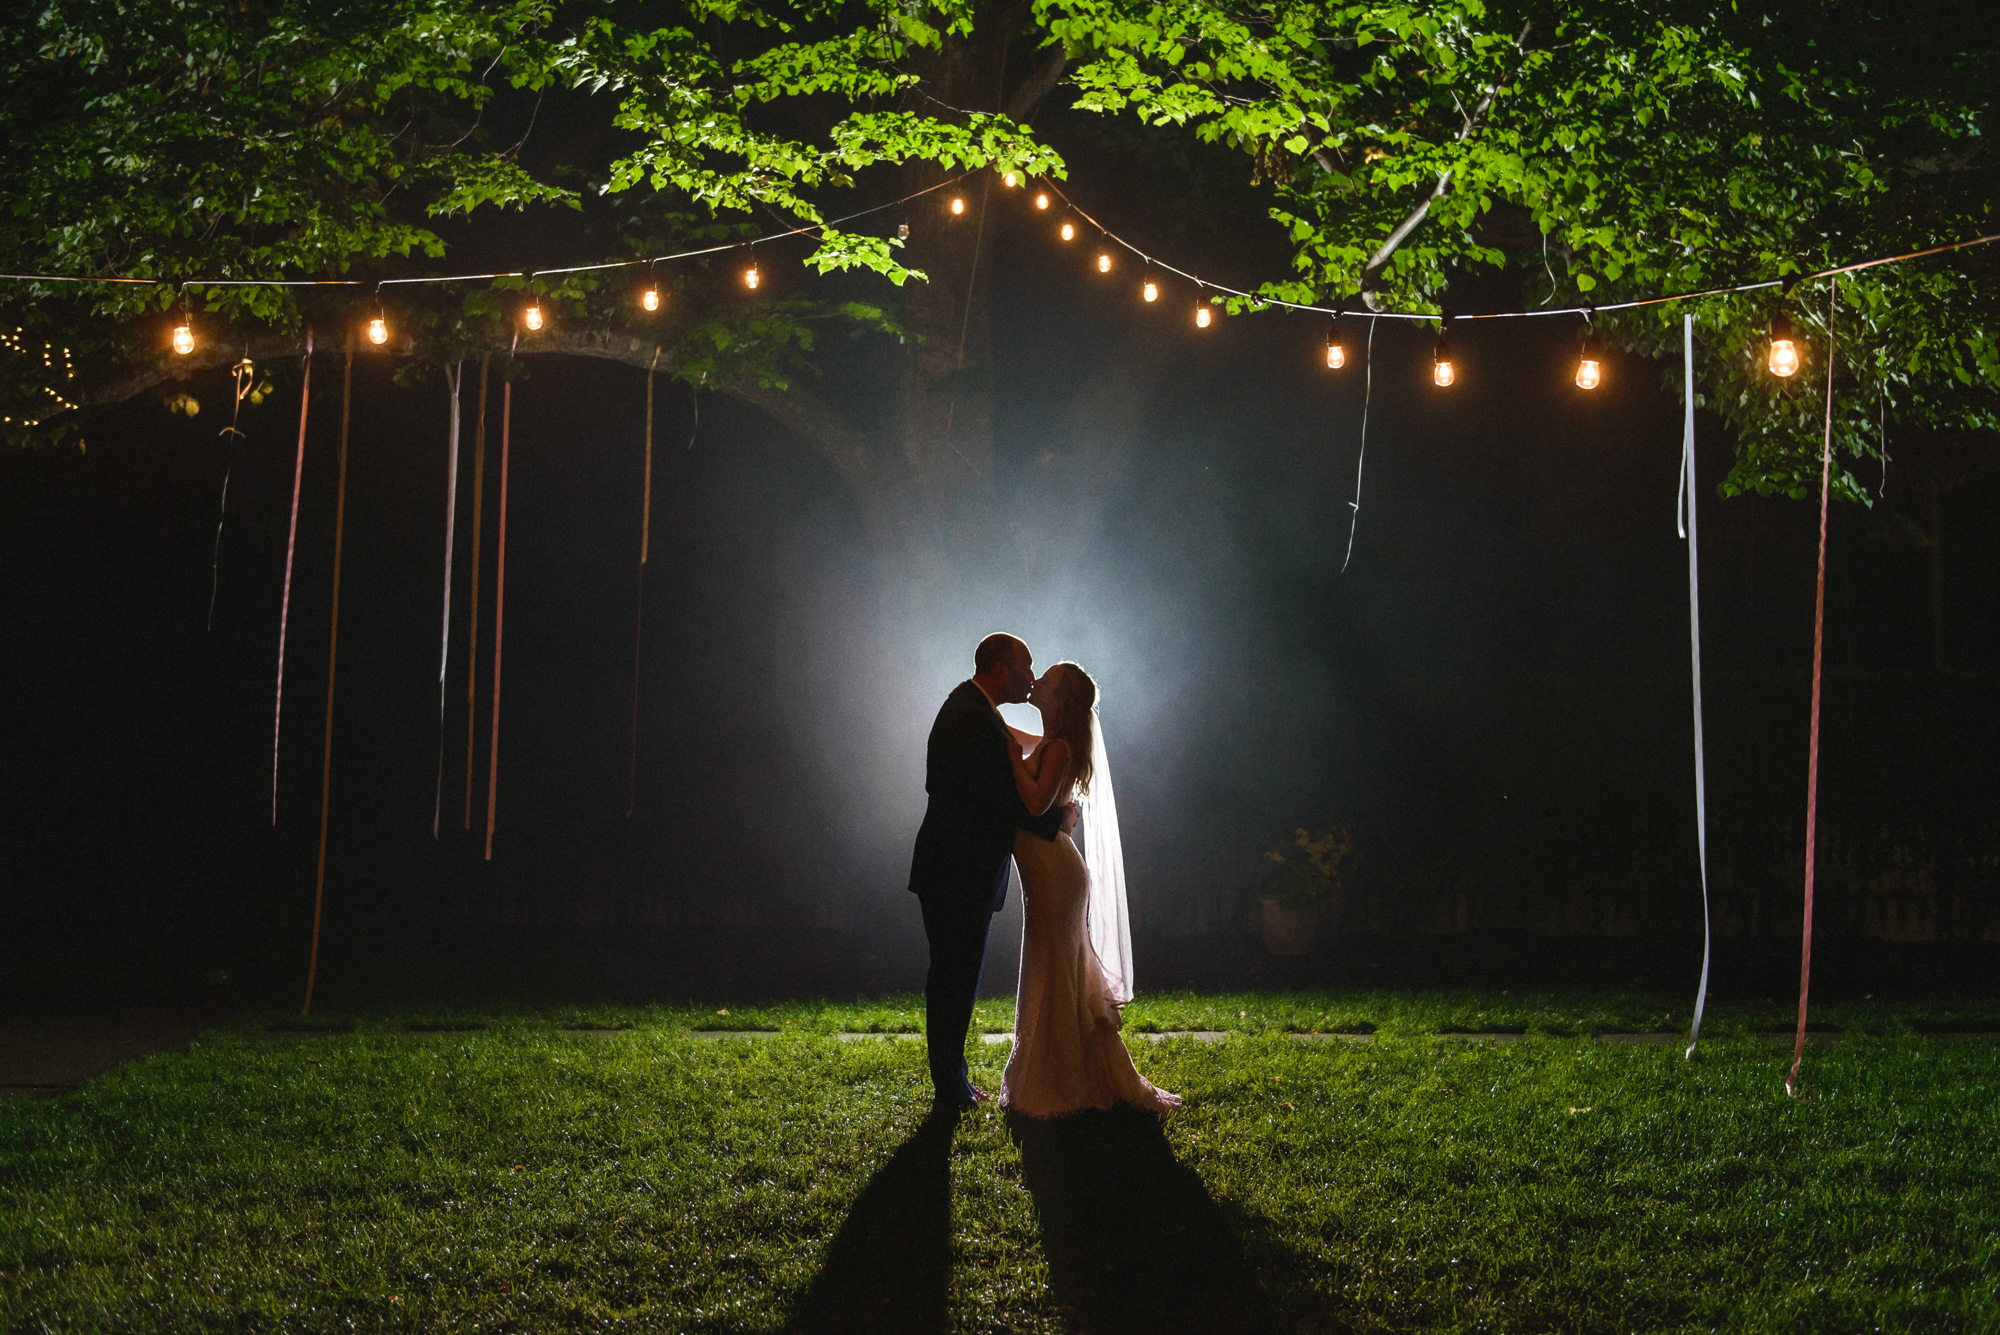 A magical photo of a bride and groom at Atria Restaurant and Brick Cellar Bar in Edgartown photo by David Welch Photography